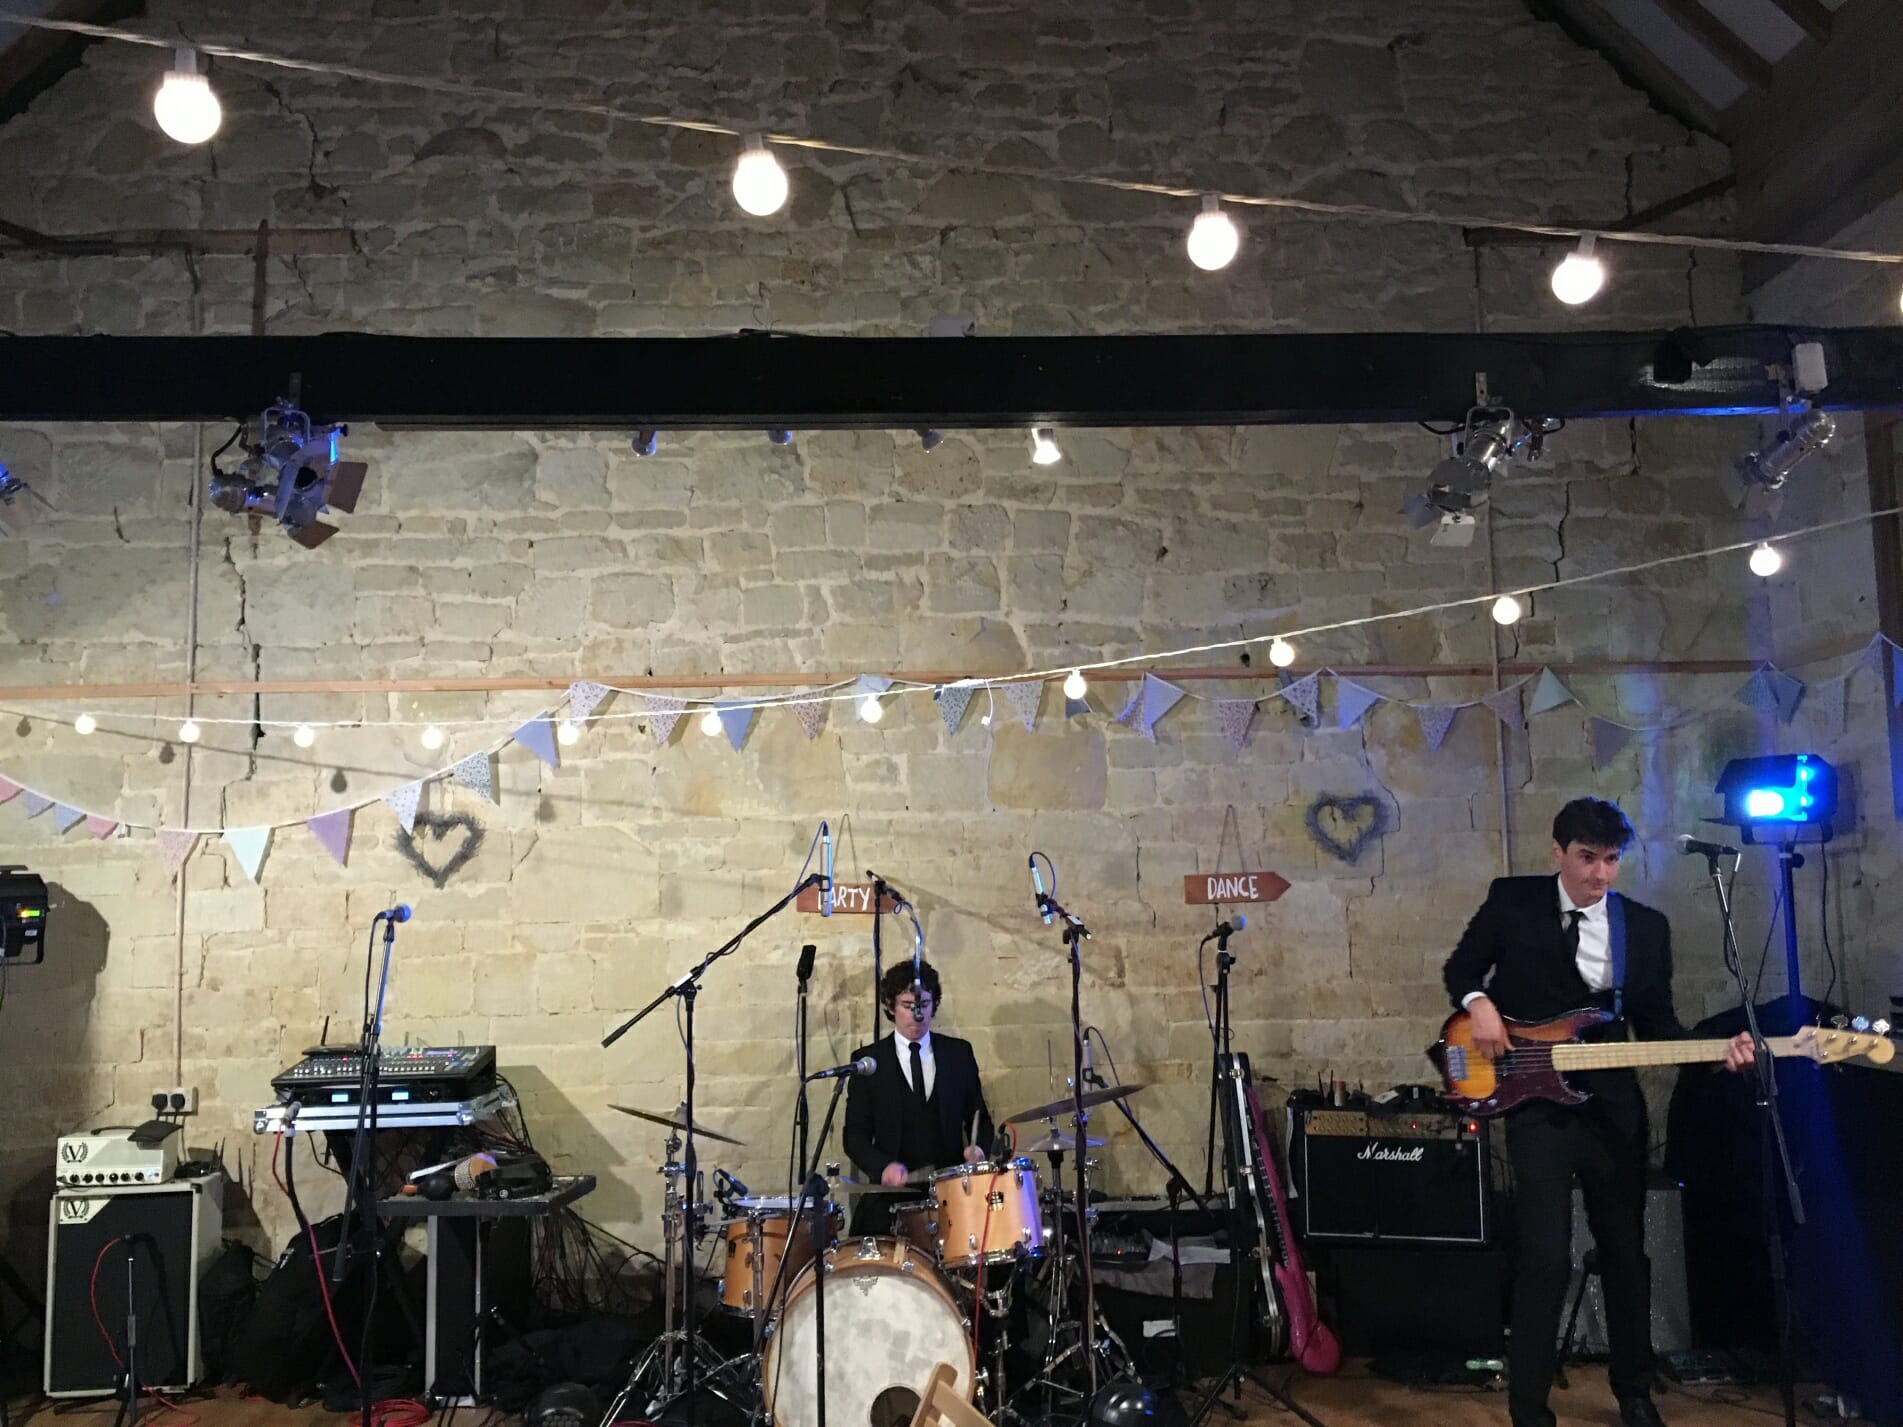 The Zoots, Zoots band, Band in Wiltshire, Wiltshire Band, Ashleywood Farm Band, Band for my wedding, Band in Wiltshire, Soundcheck, Party Band, Band in Southwest,